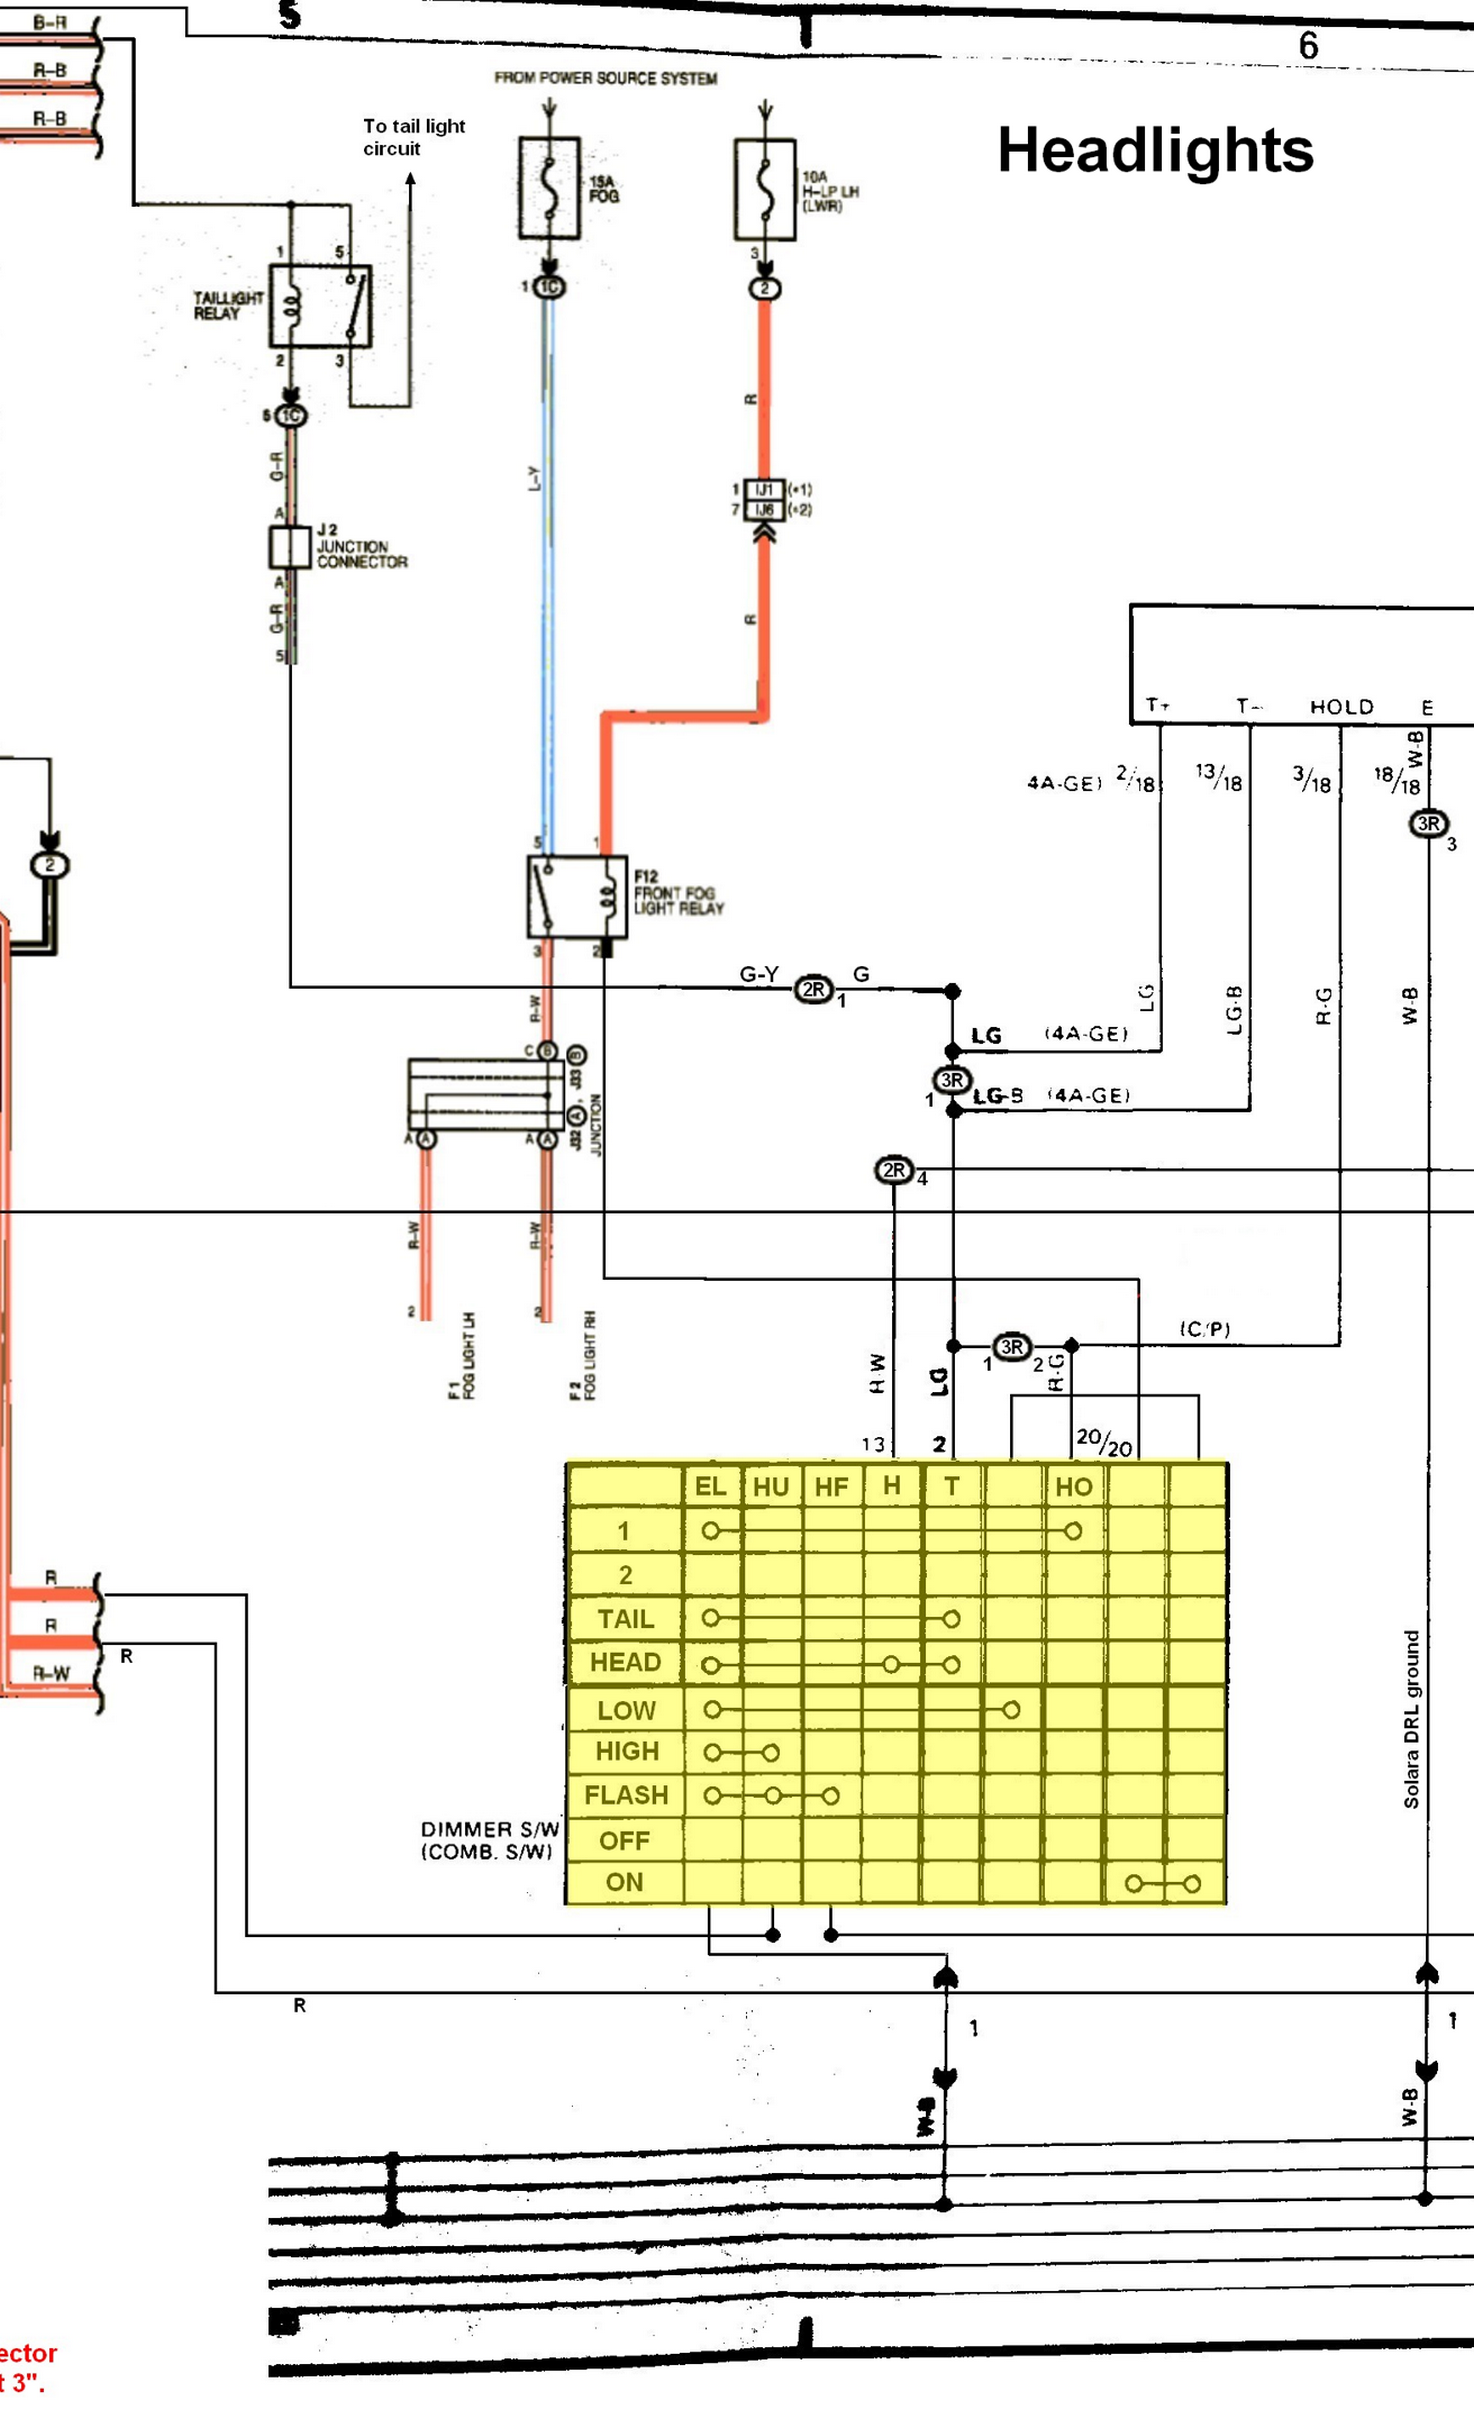 headlights_hybrid_schematic_panel2.png